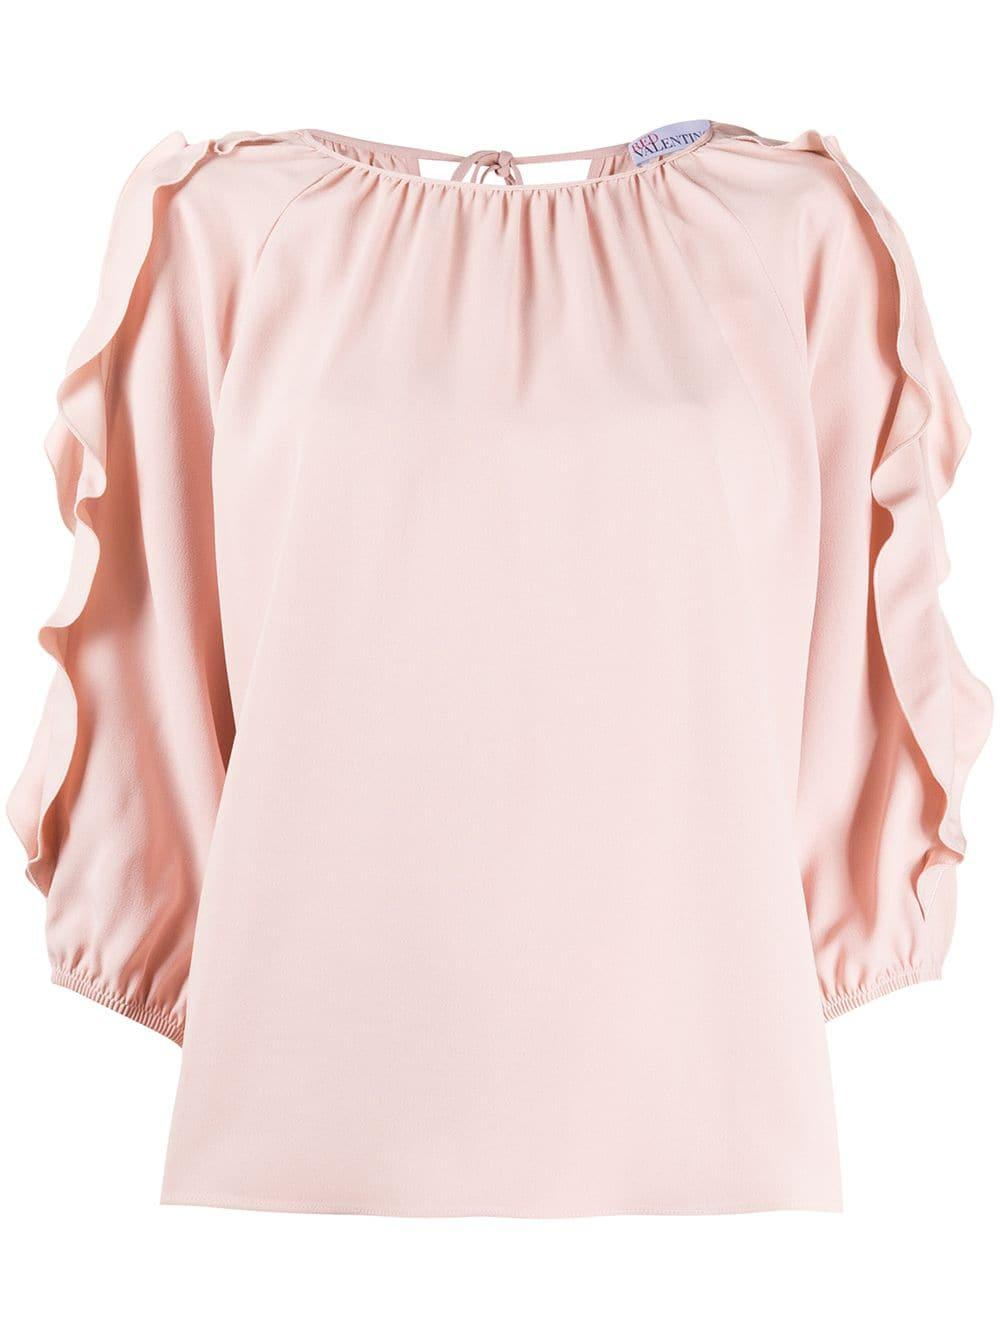 Open Sleeve Top